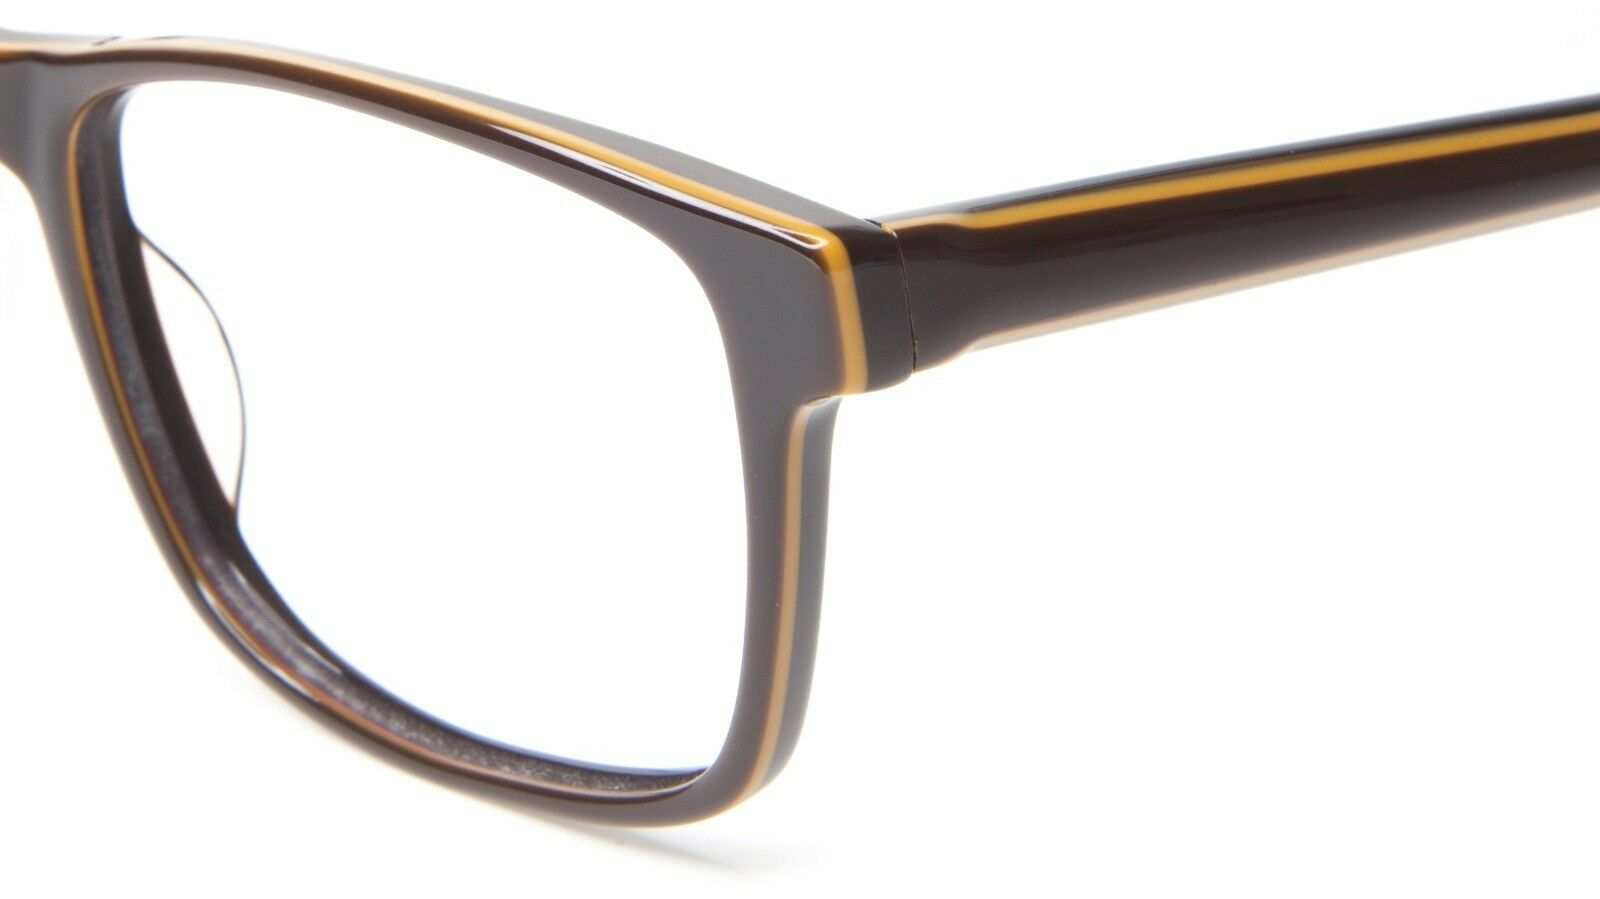 d448ff33ab5 PRODESIGN Denmark 1722 C.5032 Brown Eyeglasses Frame 54-16-145 IG B39 Japan